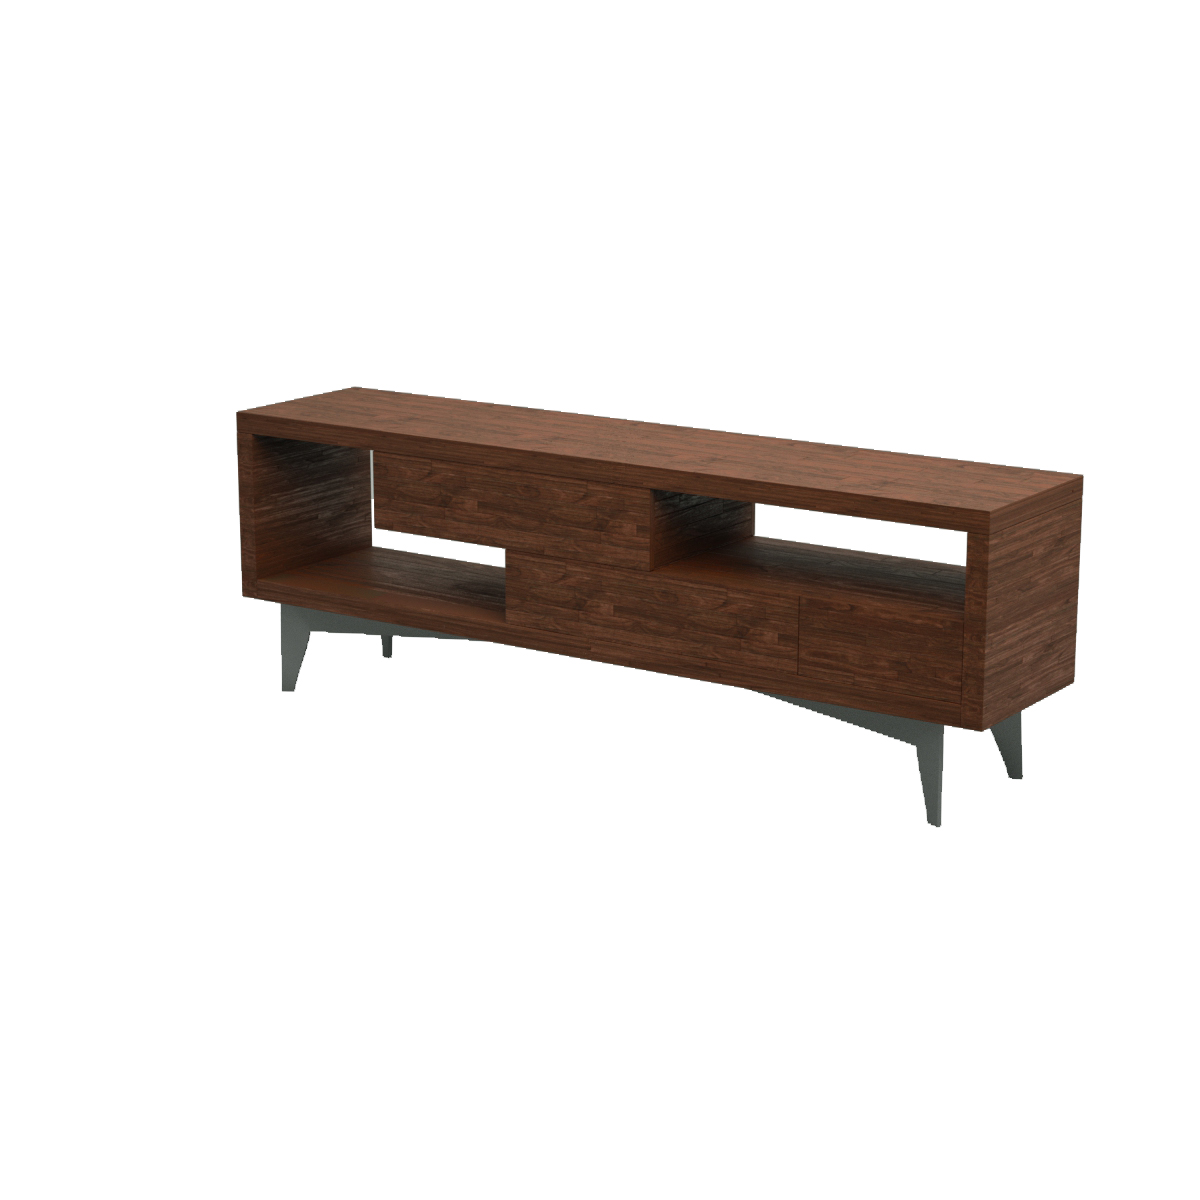 Visual blender tango buffet sideboard 3d model download for Sideboard 3d